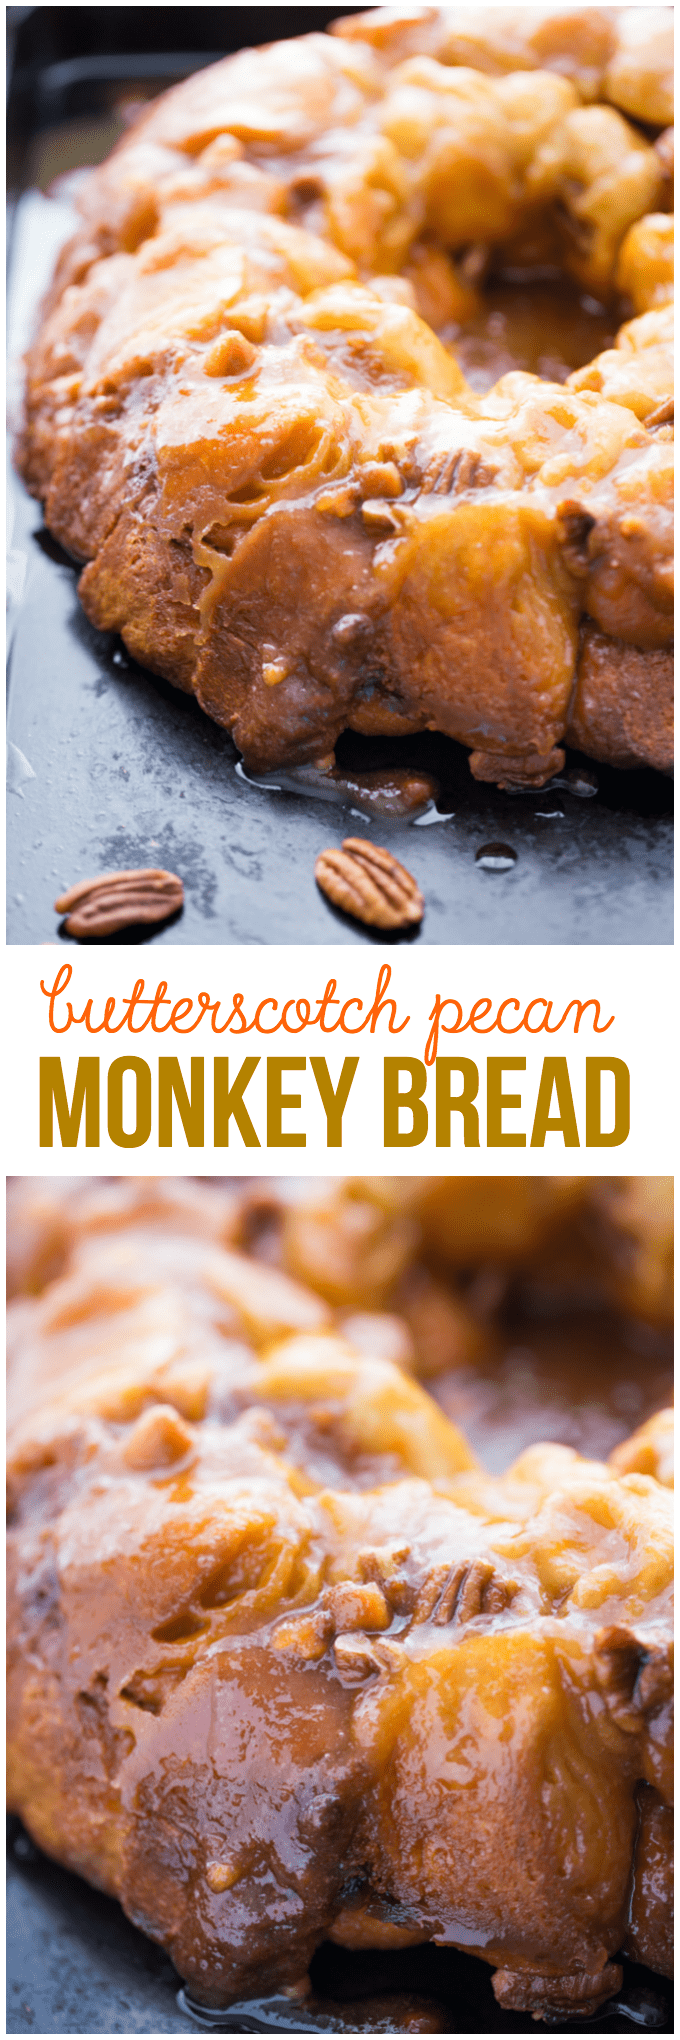 Butterscotch Pecan Monkey Bread - Ridiculously easy and sticky sweet! This monkey bread is slathered in a warm butterscotch pecan sauce and is so decadent.